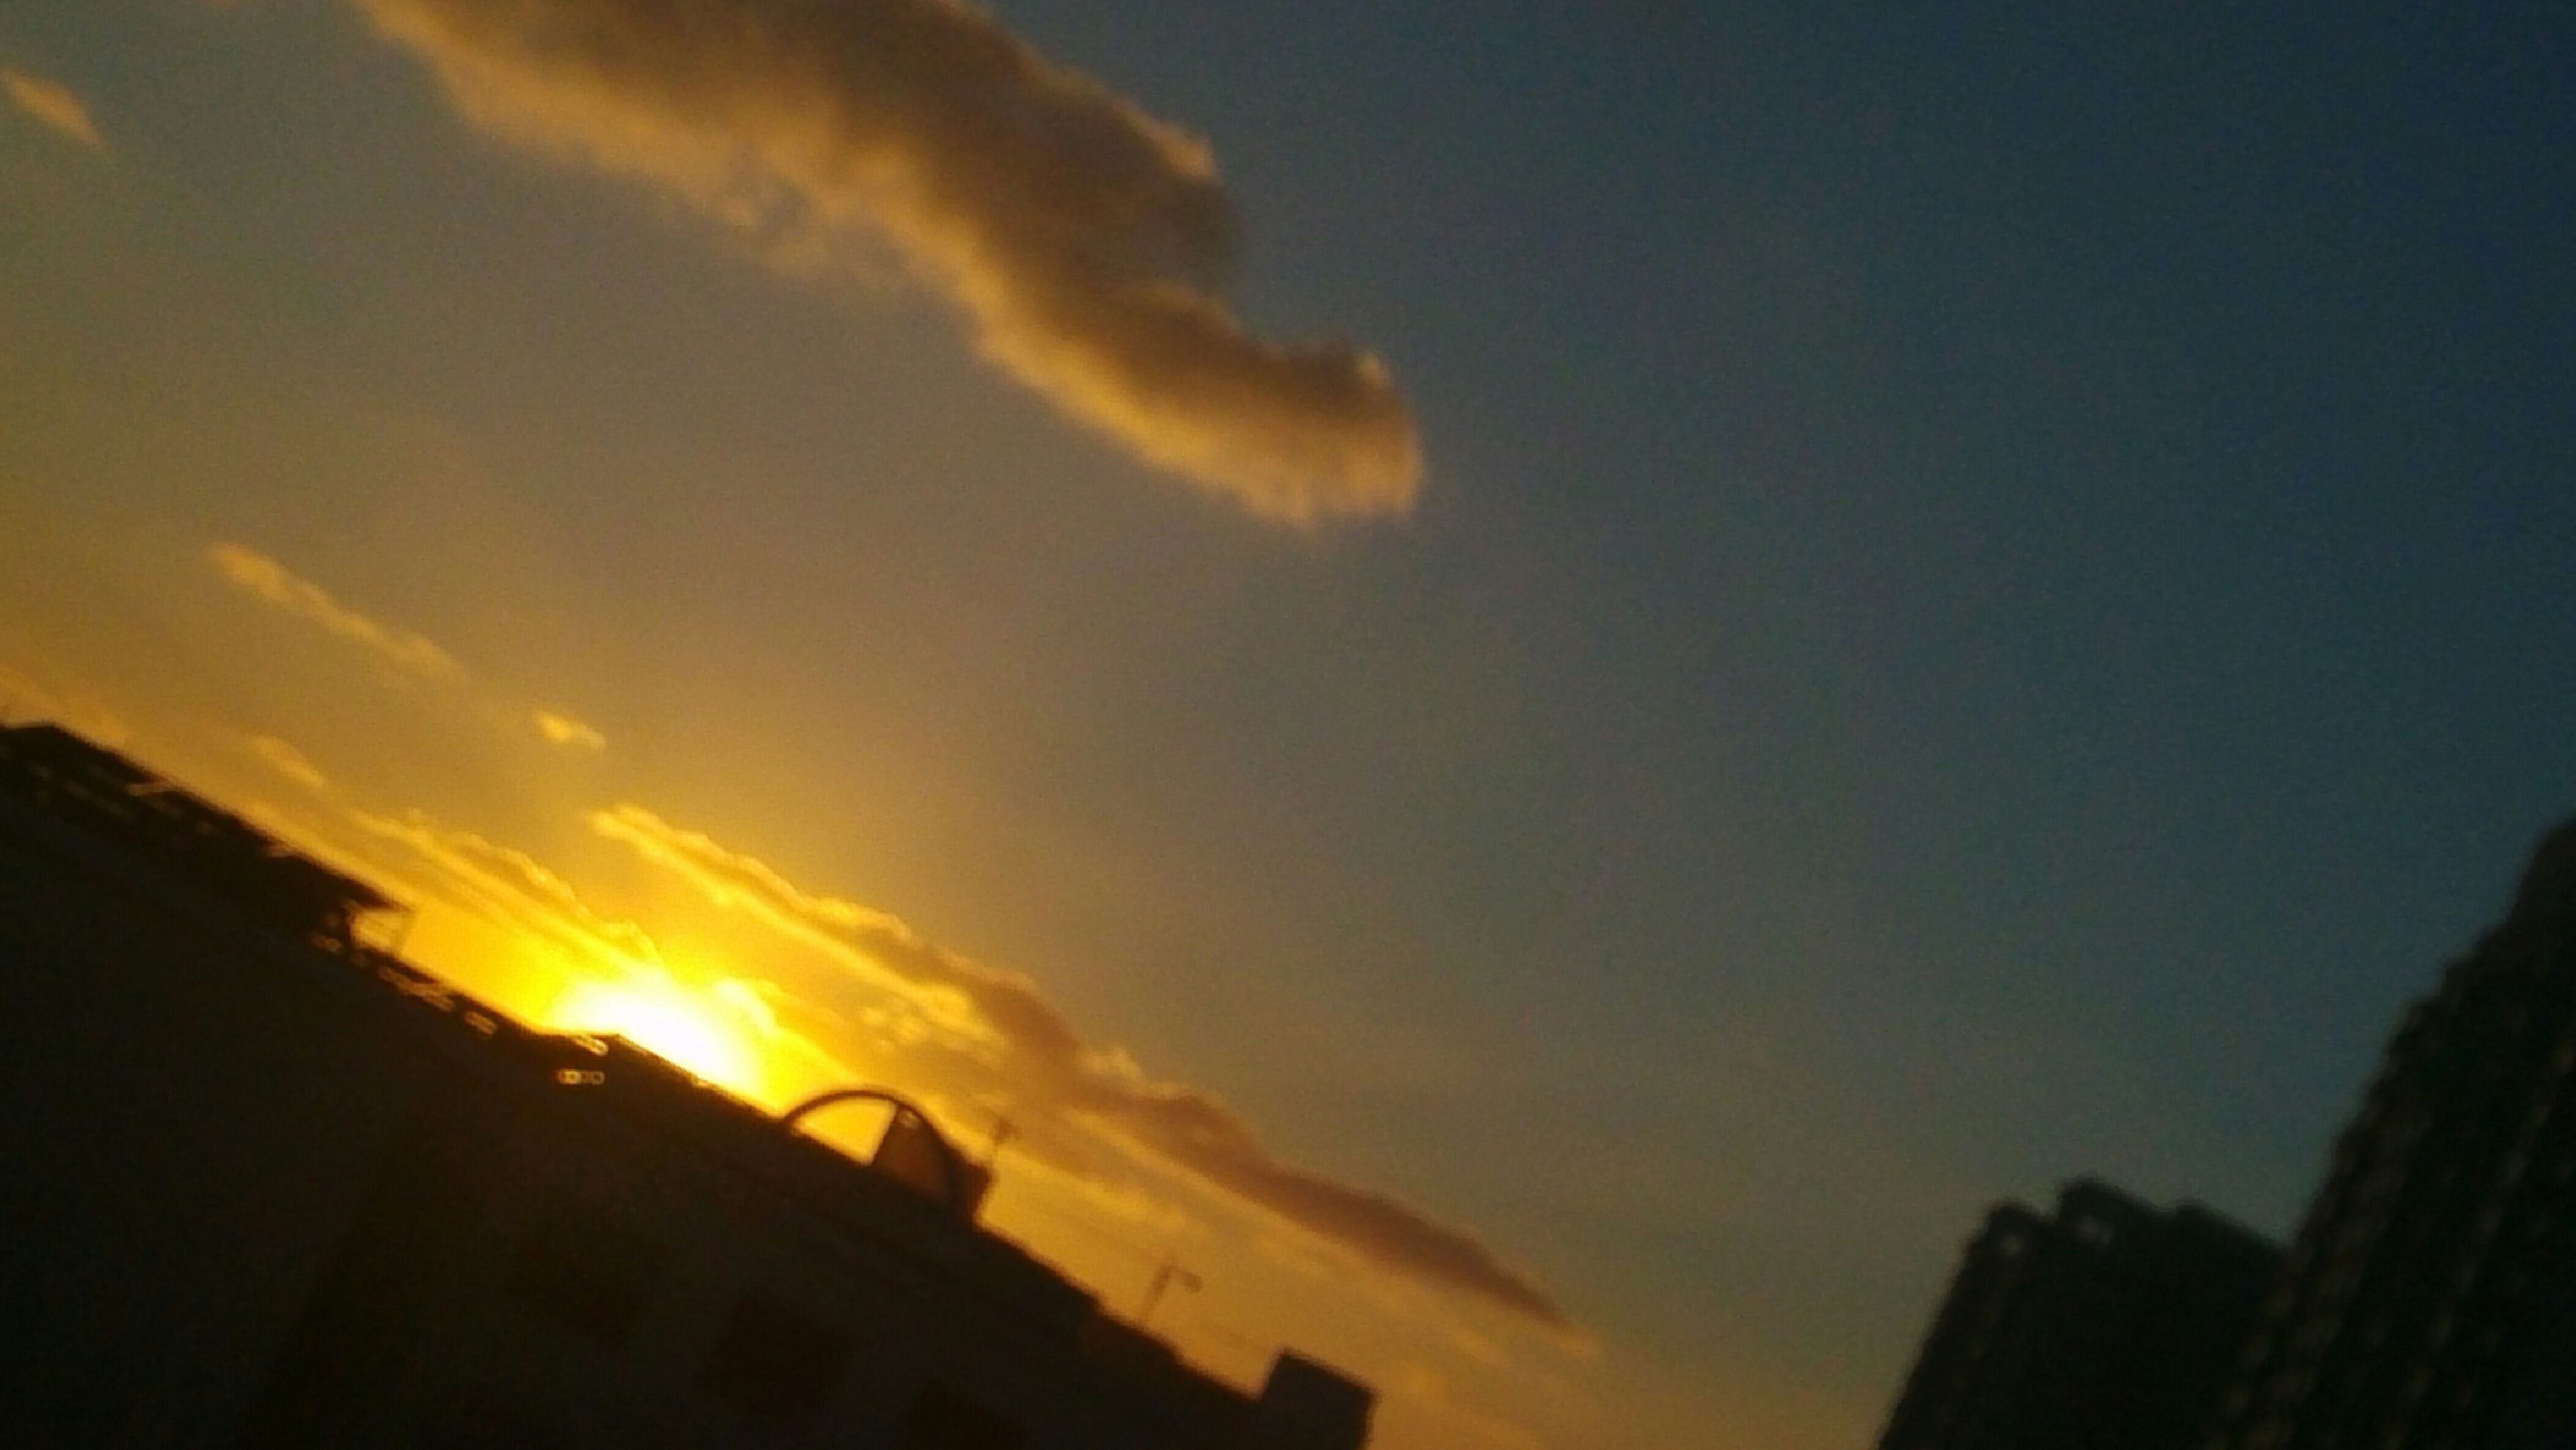 sunset, sky, silhouette, low angle view, cloud - sky, orange color, building exterior, built structure, architecture, beauty in nature, nature, cloud, scenics, outdoors, no people, sunlight, cloudy, dramatic sky, tranquility, dusk